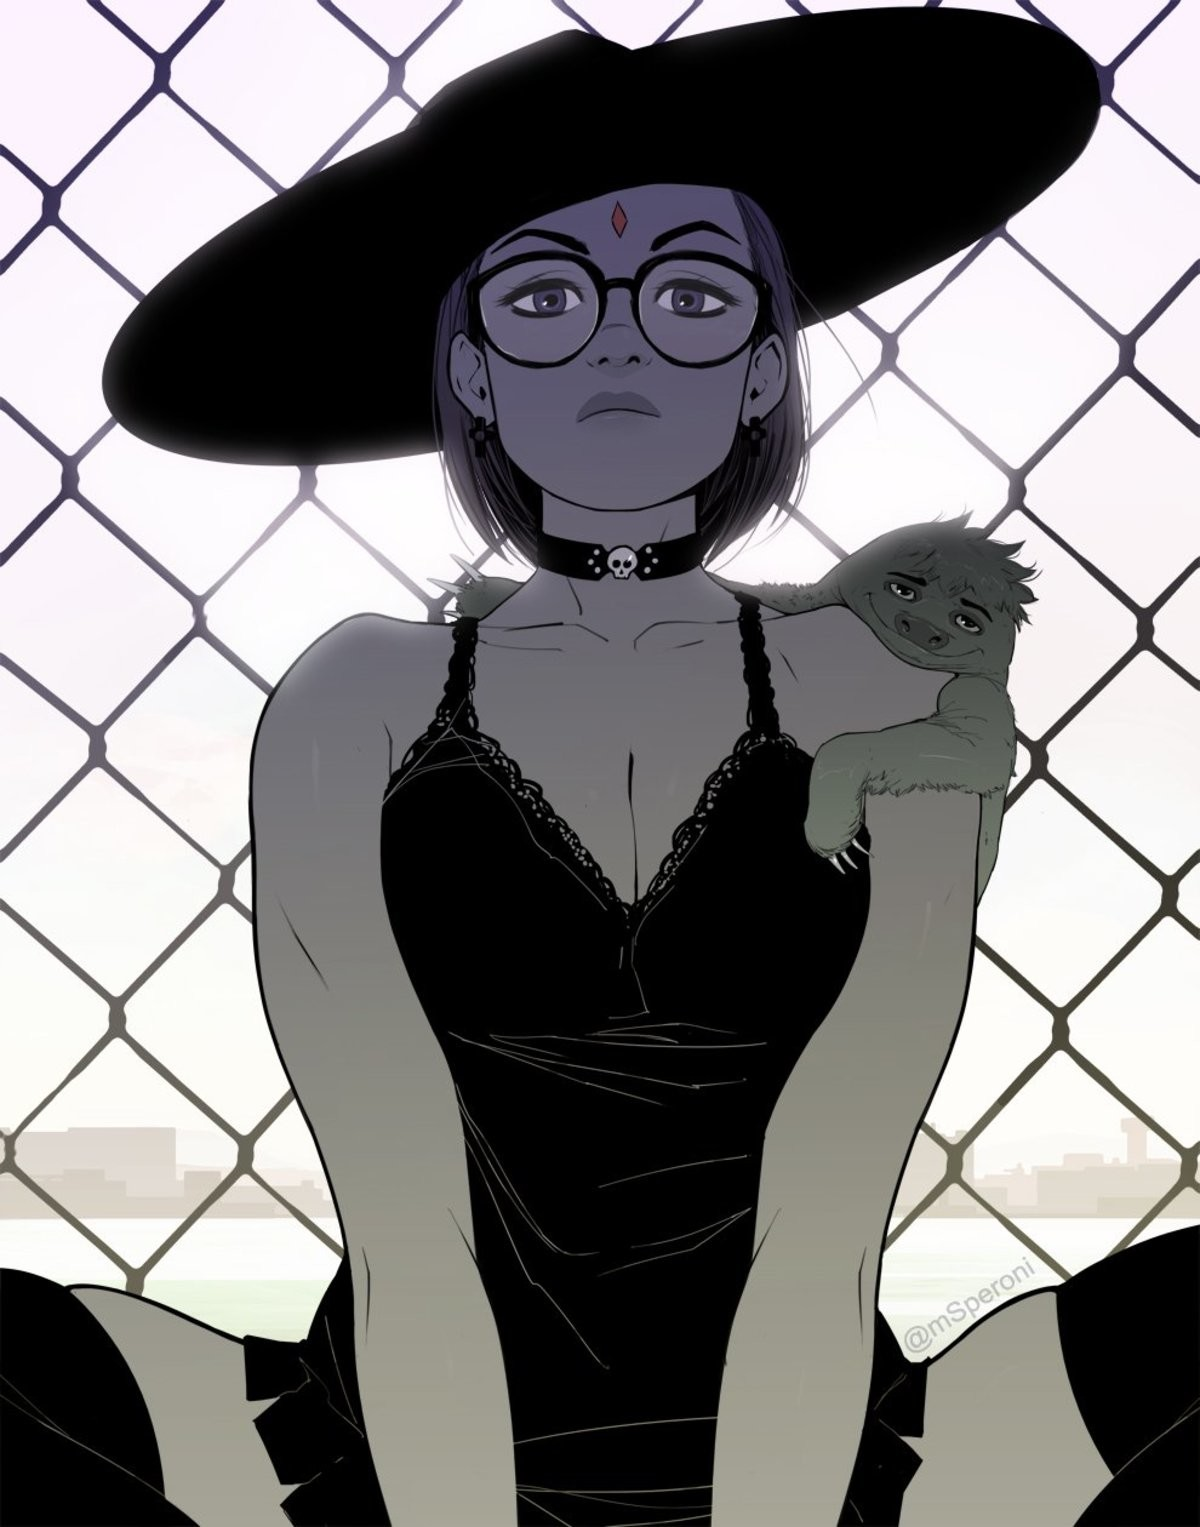 goth sloth. join list: Lewdraven (1615 subs)Mention History.. This would be the perfect visualization of me and my goth gf...